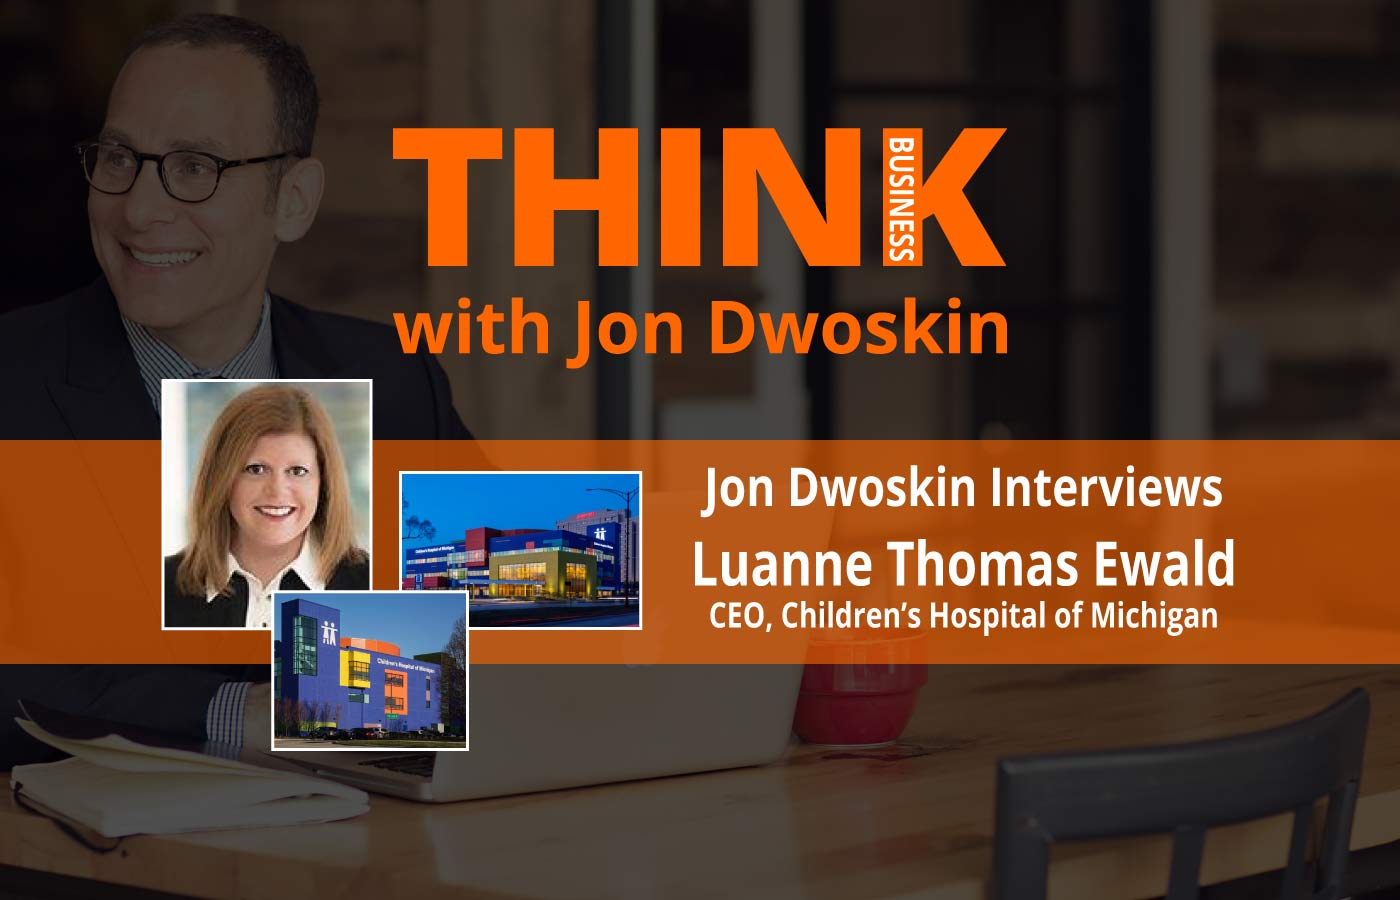 THINK Business Podcast: Jon Dwoskin Interviews Luanne Thomas Ewald